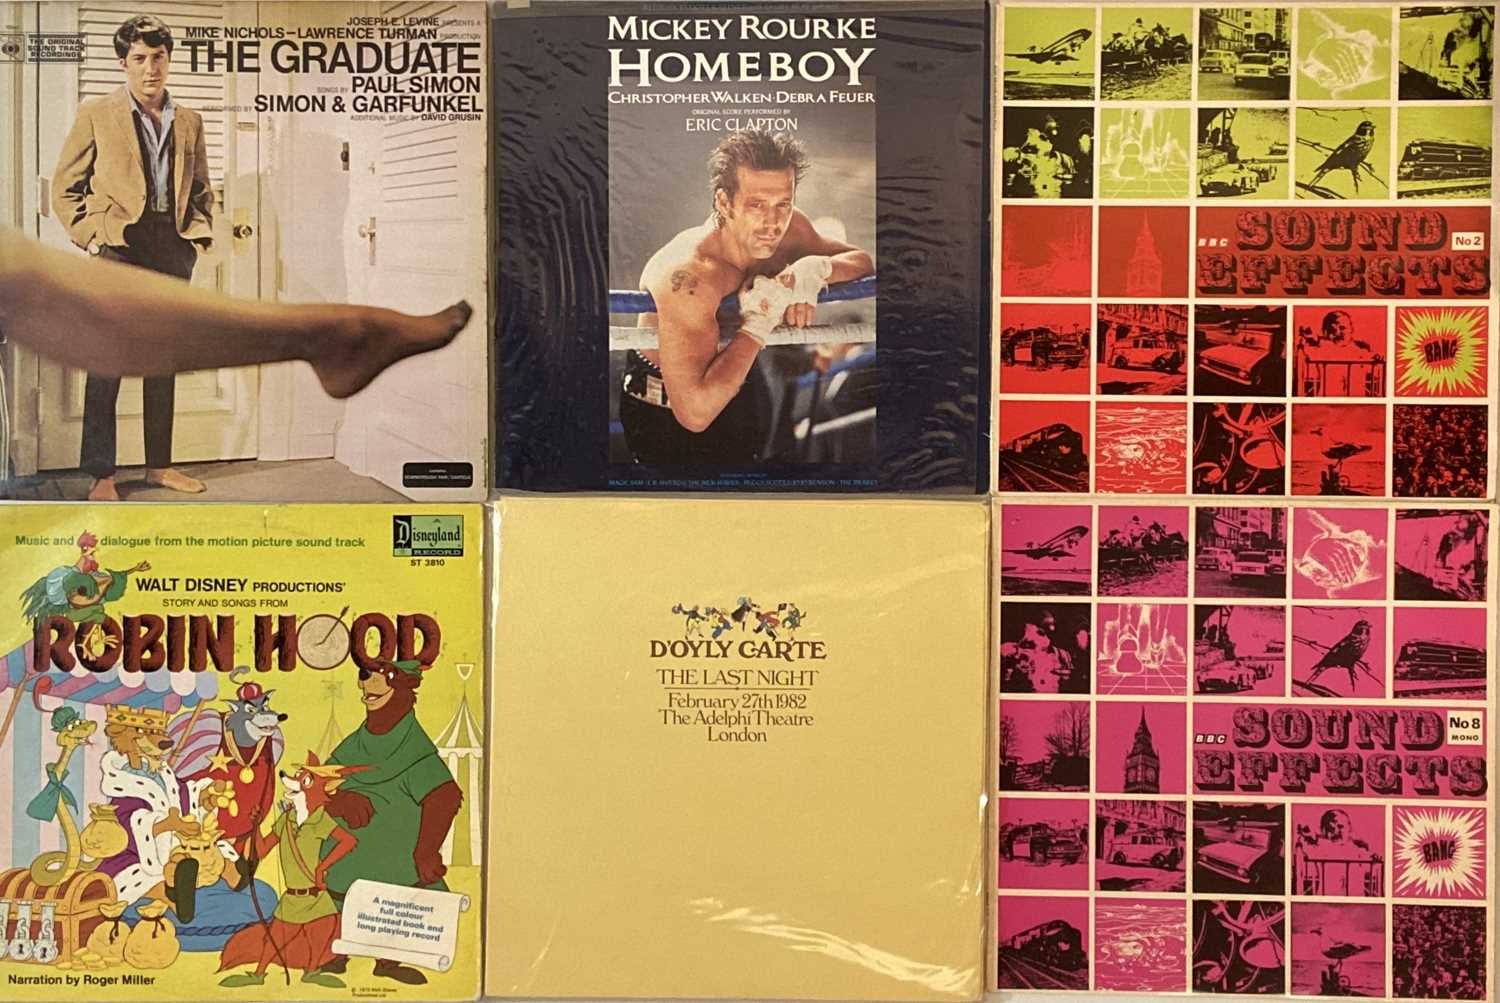 SOUNDTRACKS/ STAGE & SCREEN/ COMEDY/ SPOKEN WORD - LPs - Image 5 of 5